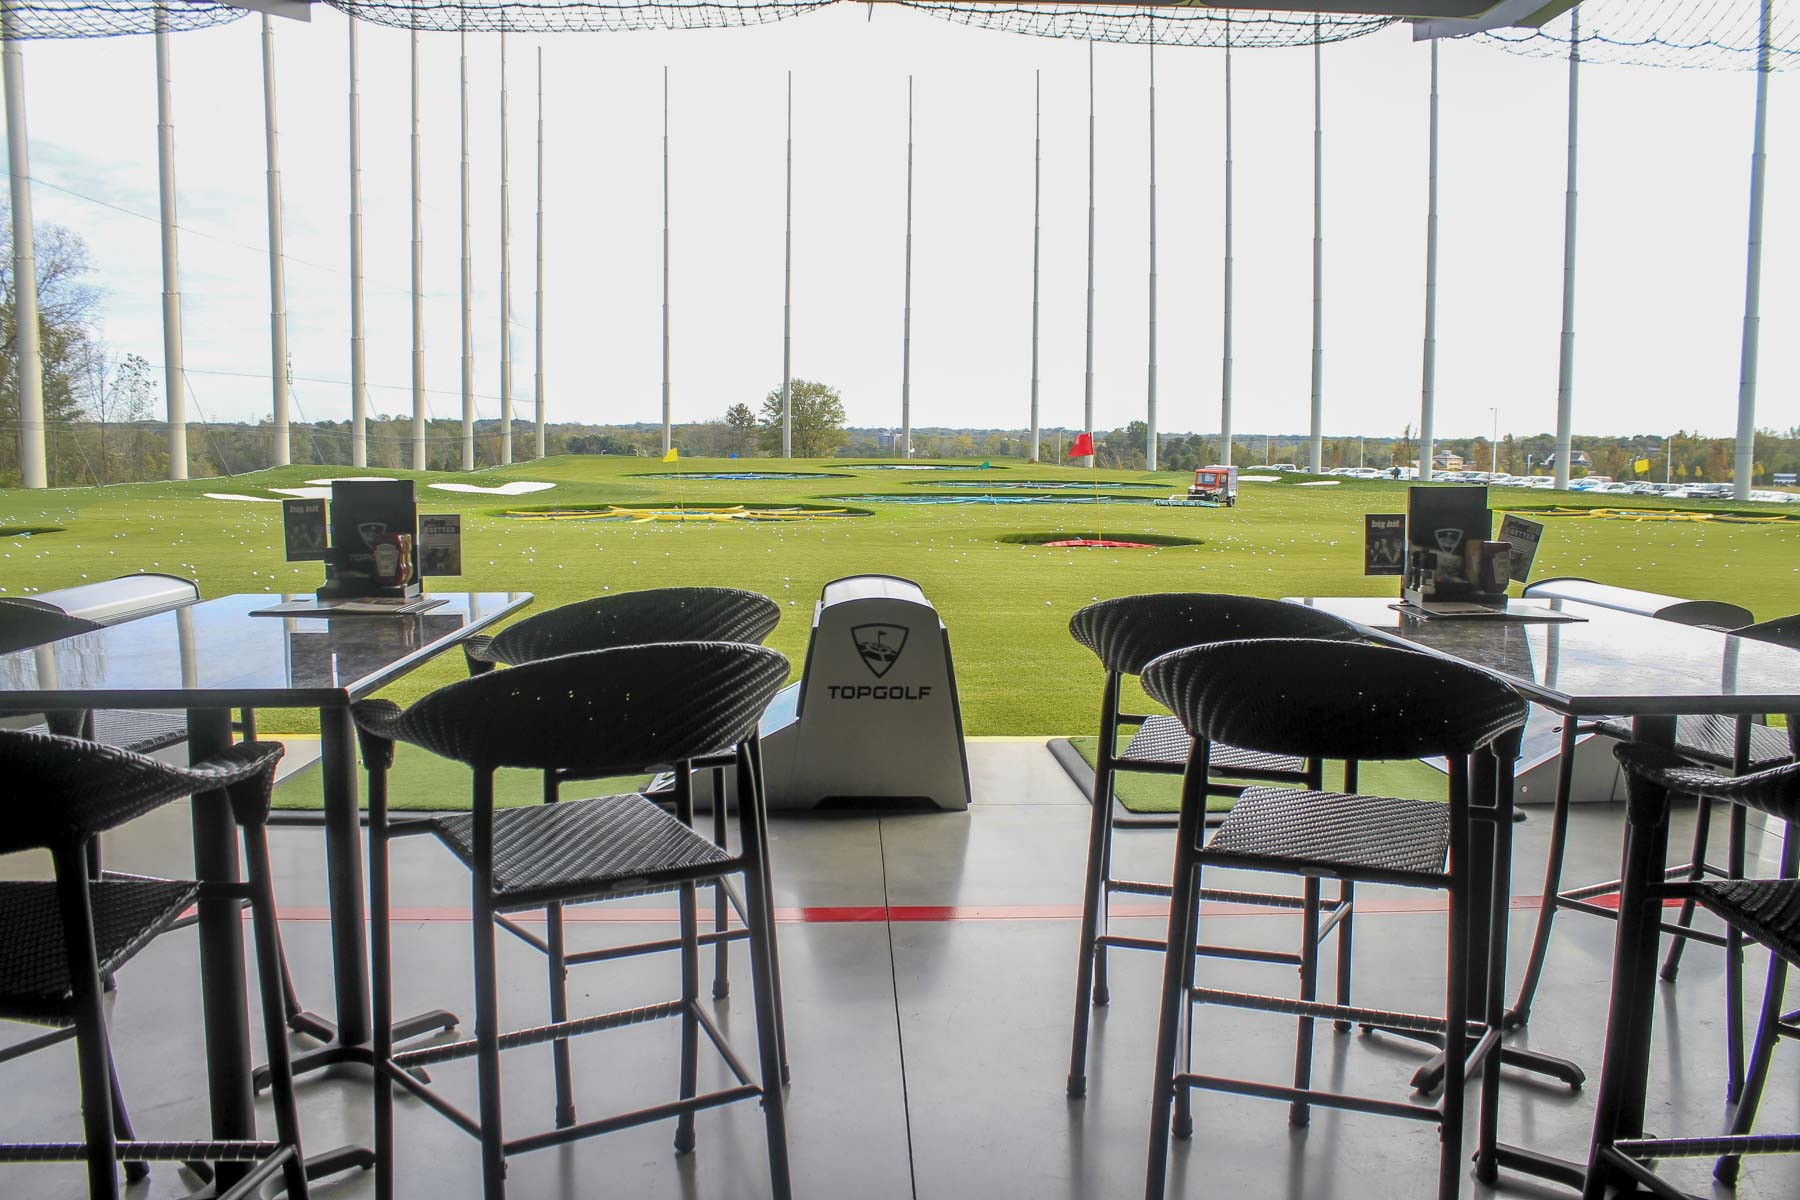 Ikea Hours Columbus Photos: Topgolf Is Open And It's Totally Wonderful